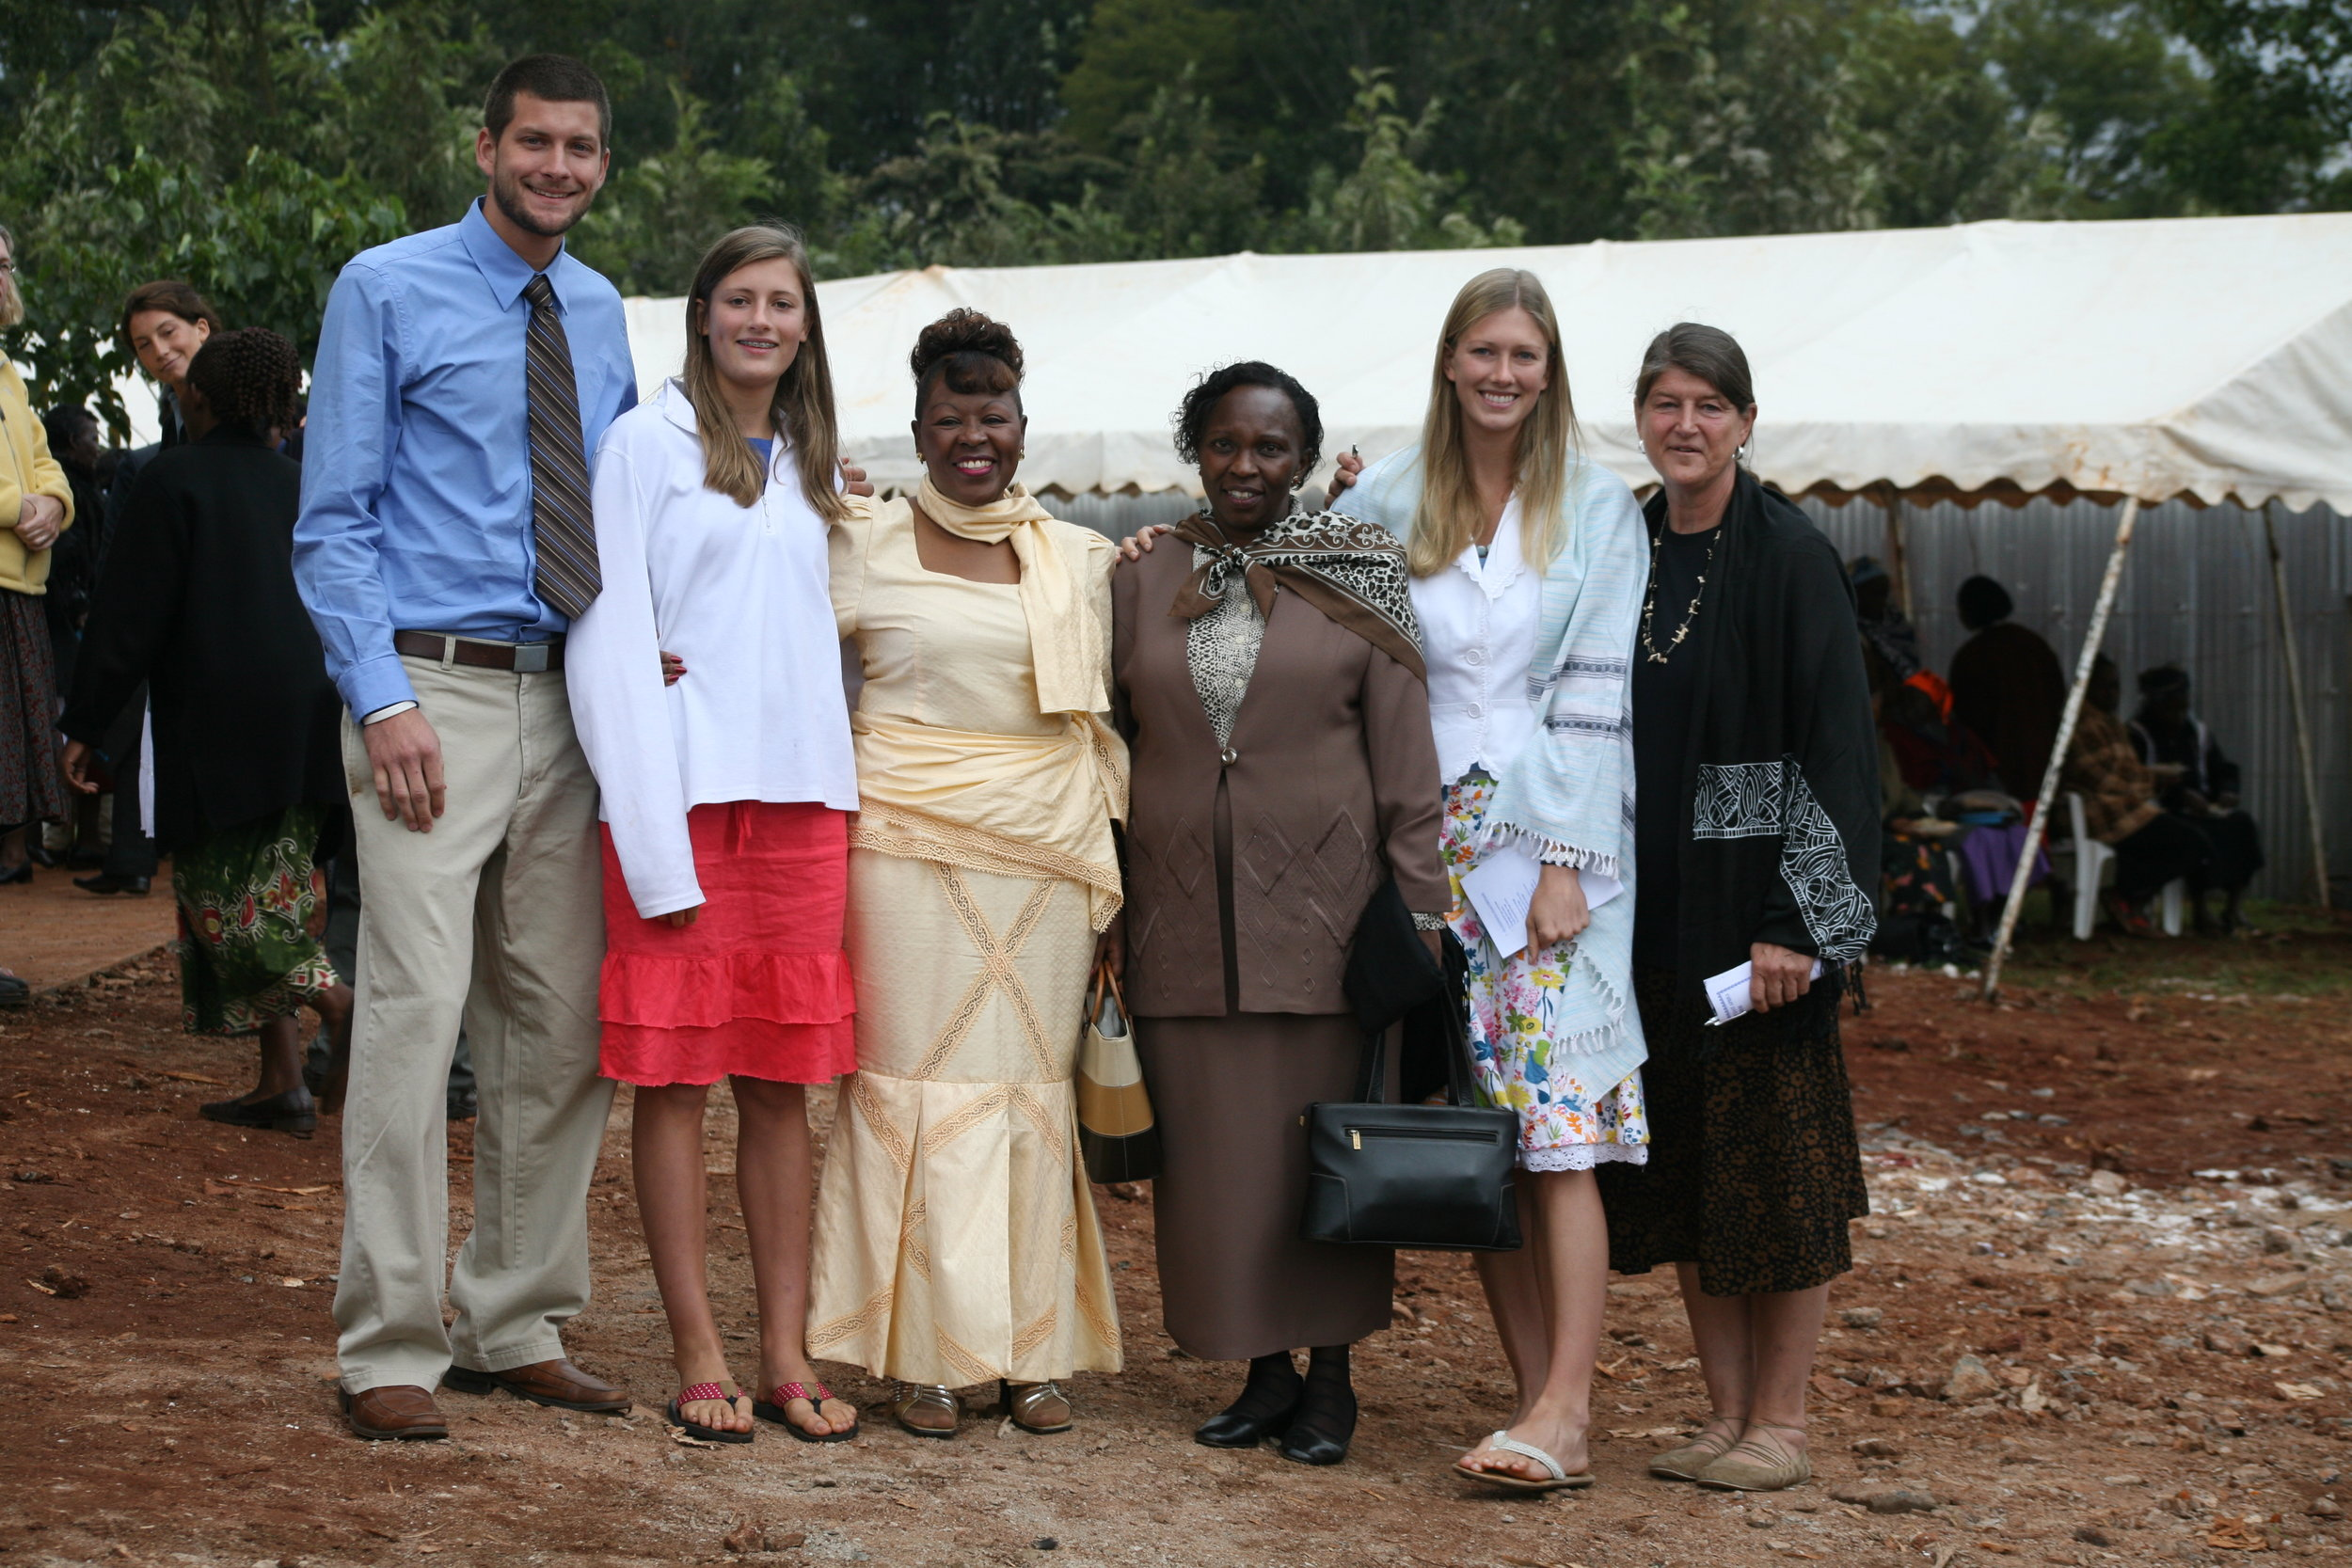 Hannah, Geneva, their family, and hospital nurses on the groundbreaking day the Sugarbaker Memorial Clinic was opened.